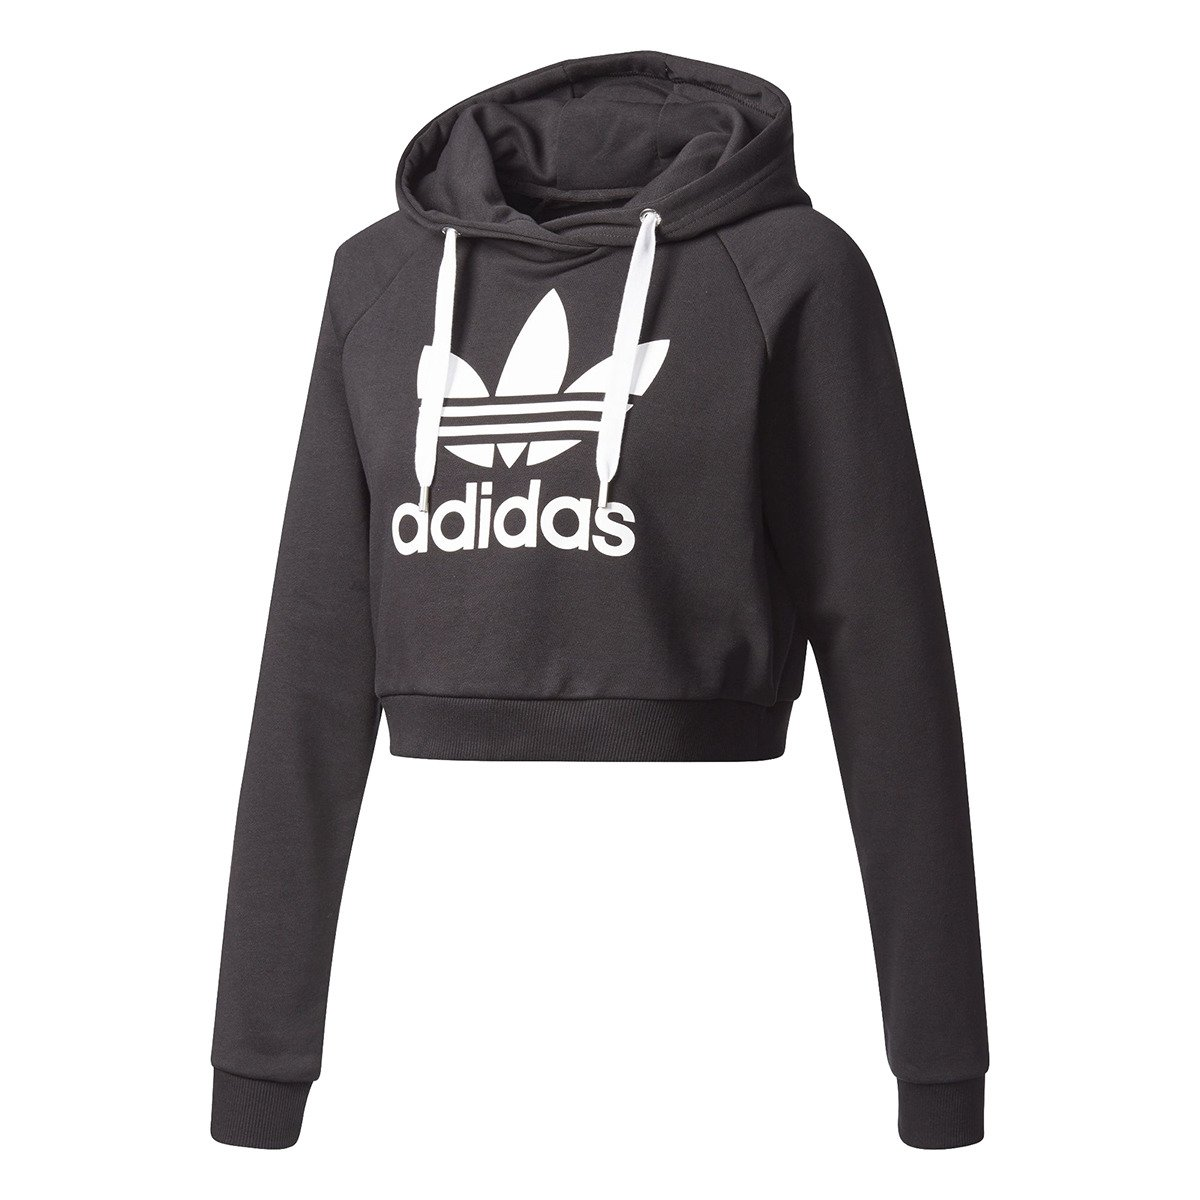 Trefoil Basketball Hoodie Crop Adidas Originals Bp9478 Clothing XBq5ZZxP